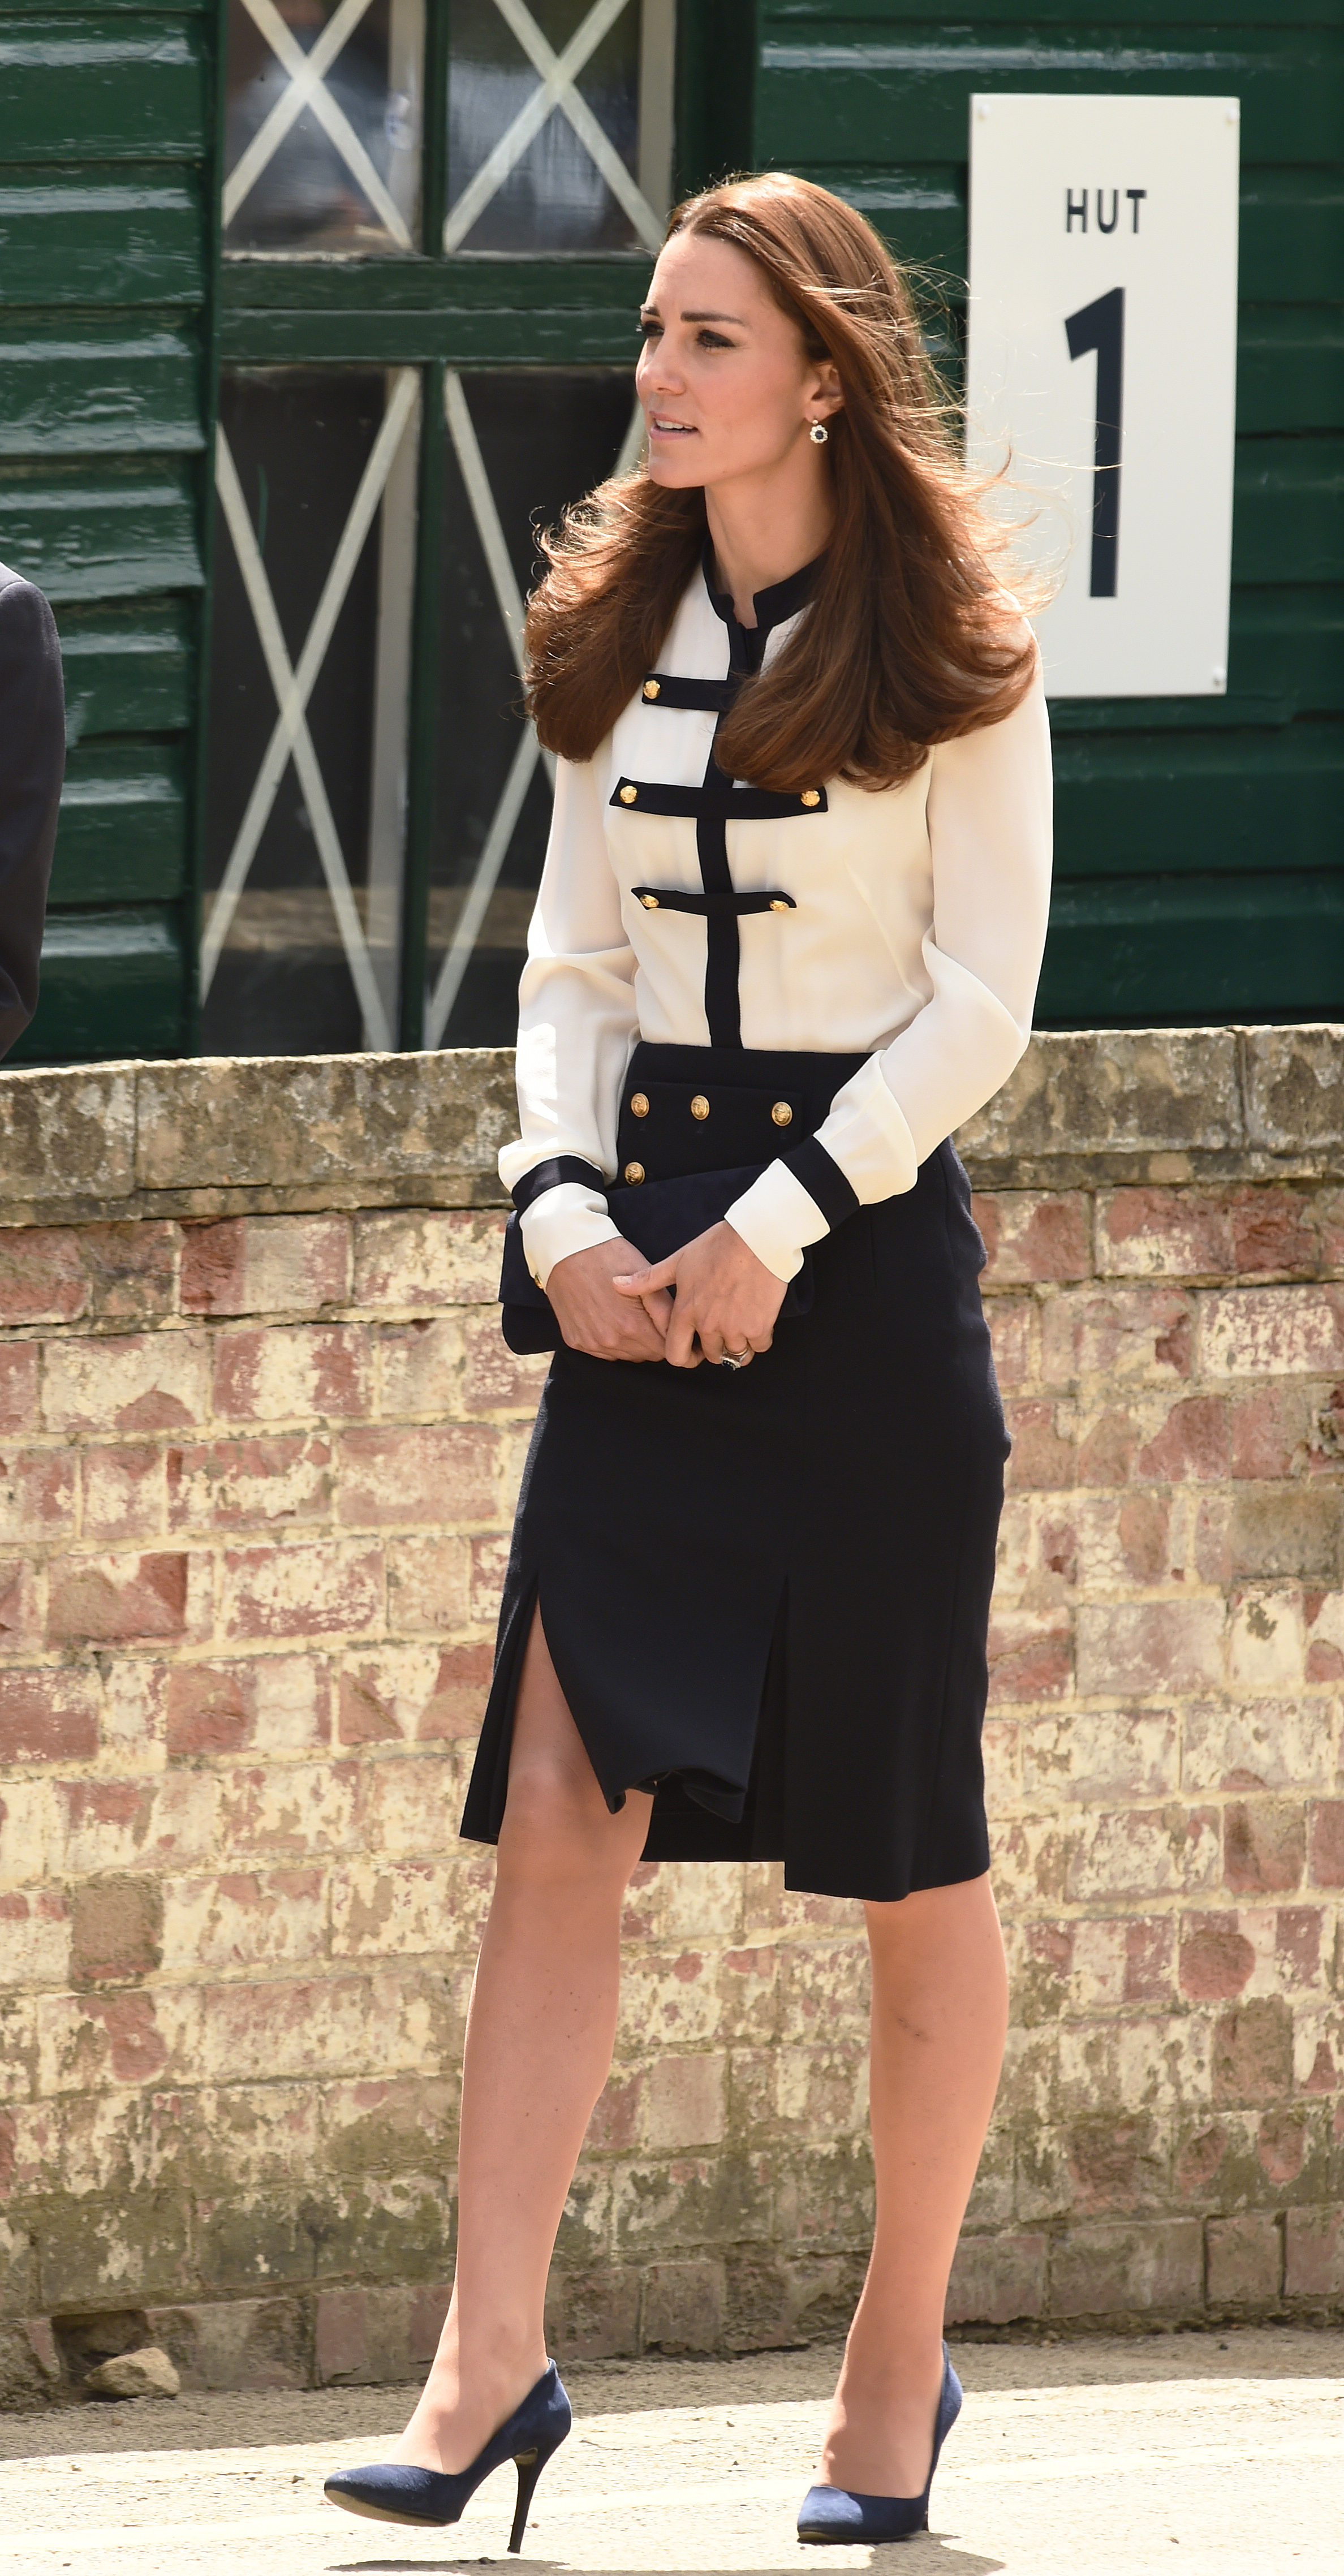 <strong>Anchors Aweigh</strong>Catherine, Duchess of Cambridge, wearing an Alexander McQueen outfit, visits Bletchley Park, where her grandmother was a codebreaker, on June 18, 2014 in Bletchley, England.